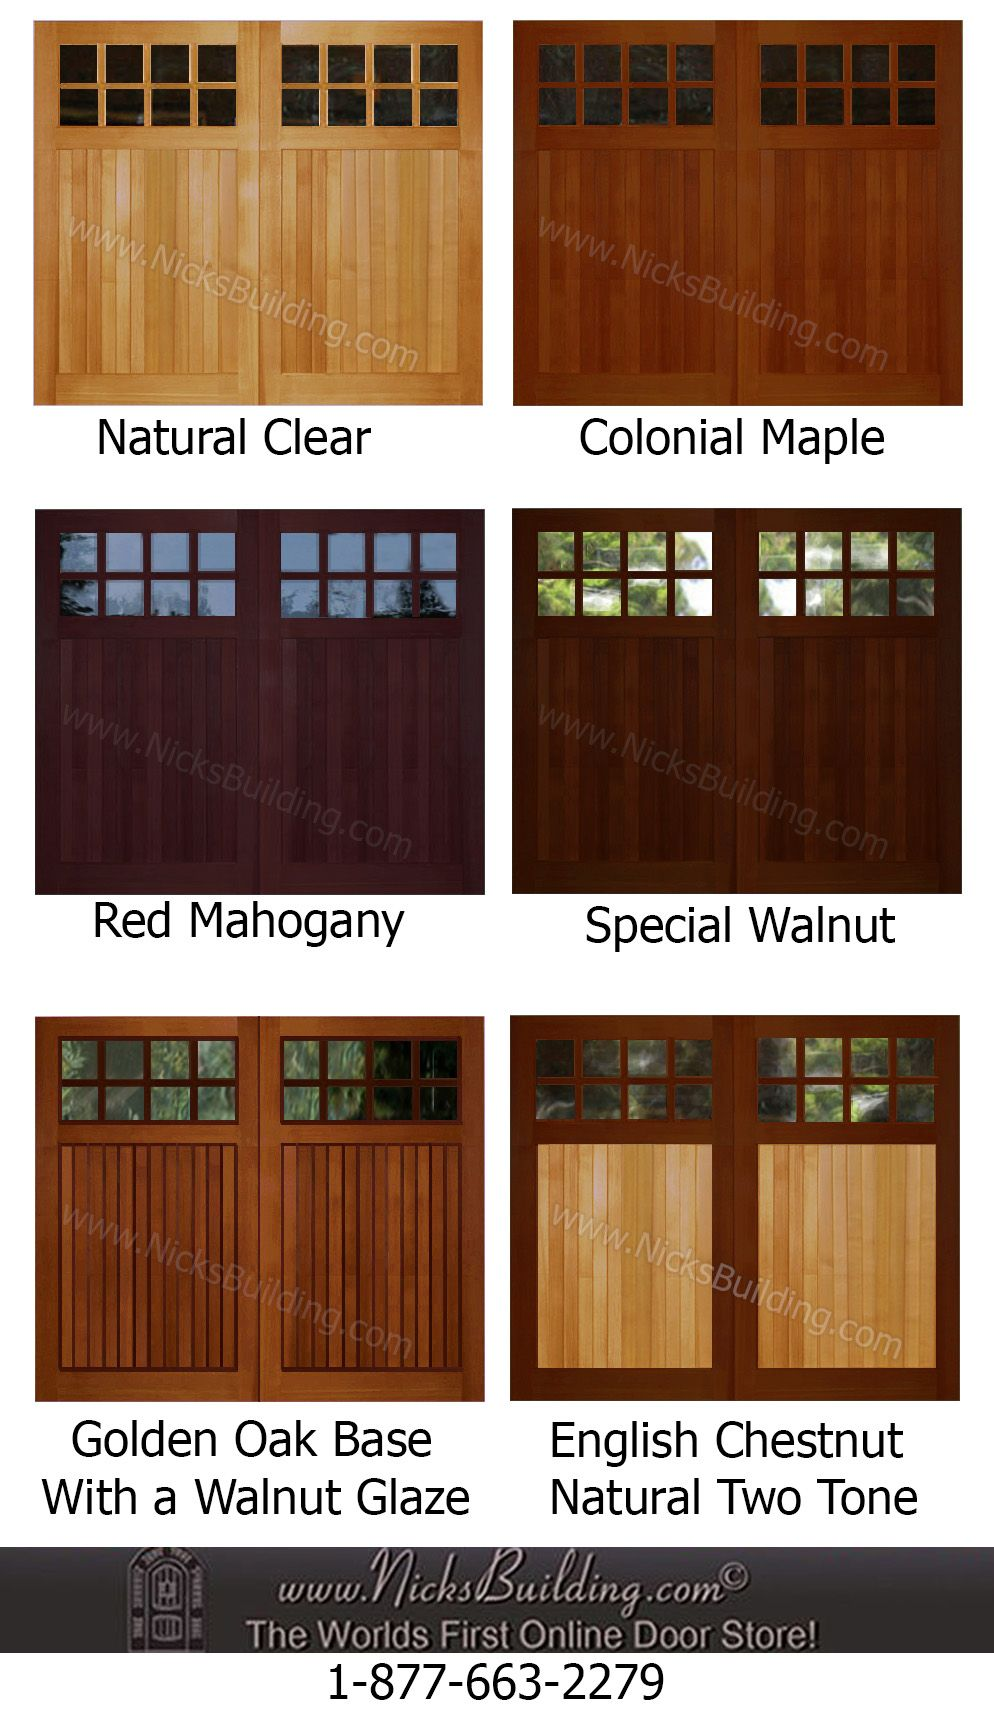 Maple Garage Doors Wood Overhead Garage Door Stain Ideas Need Help Deciding On A